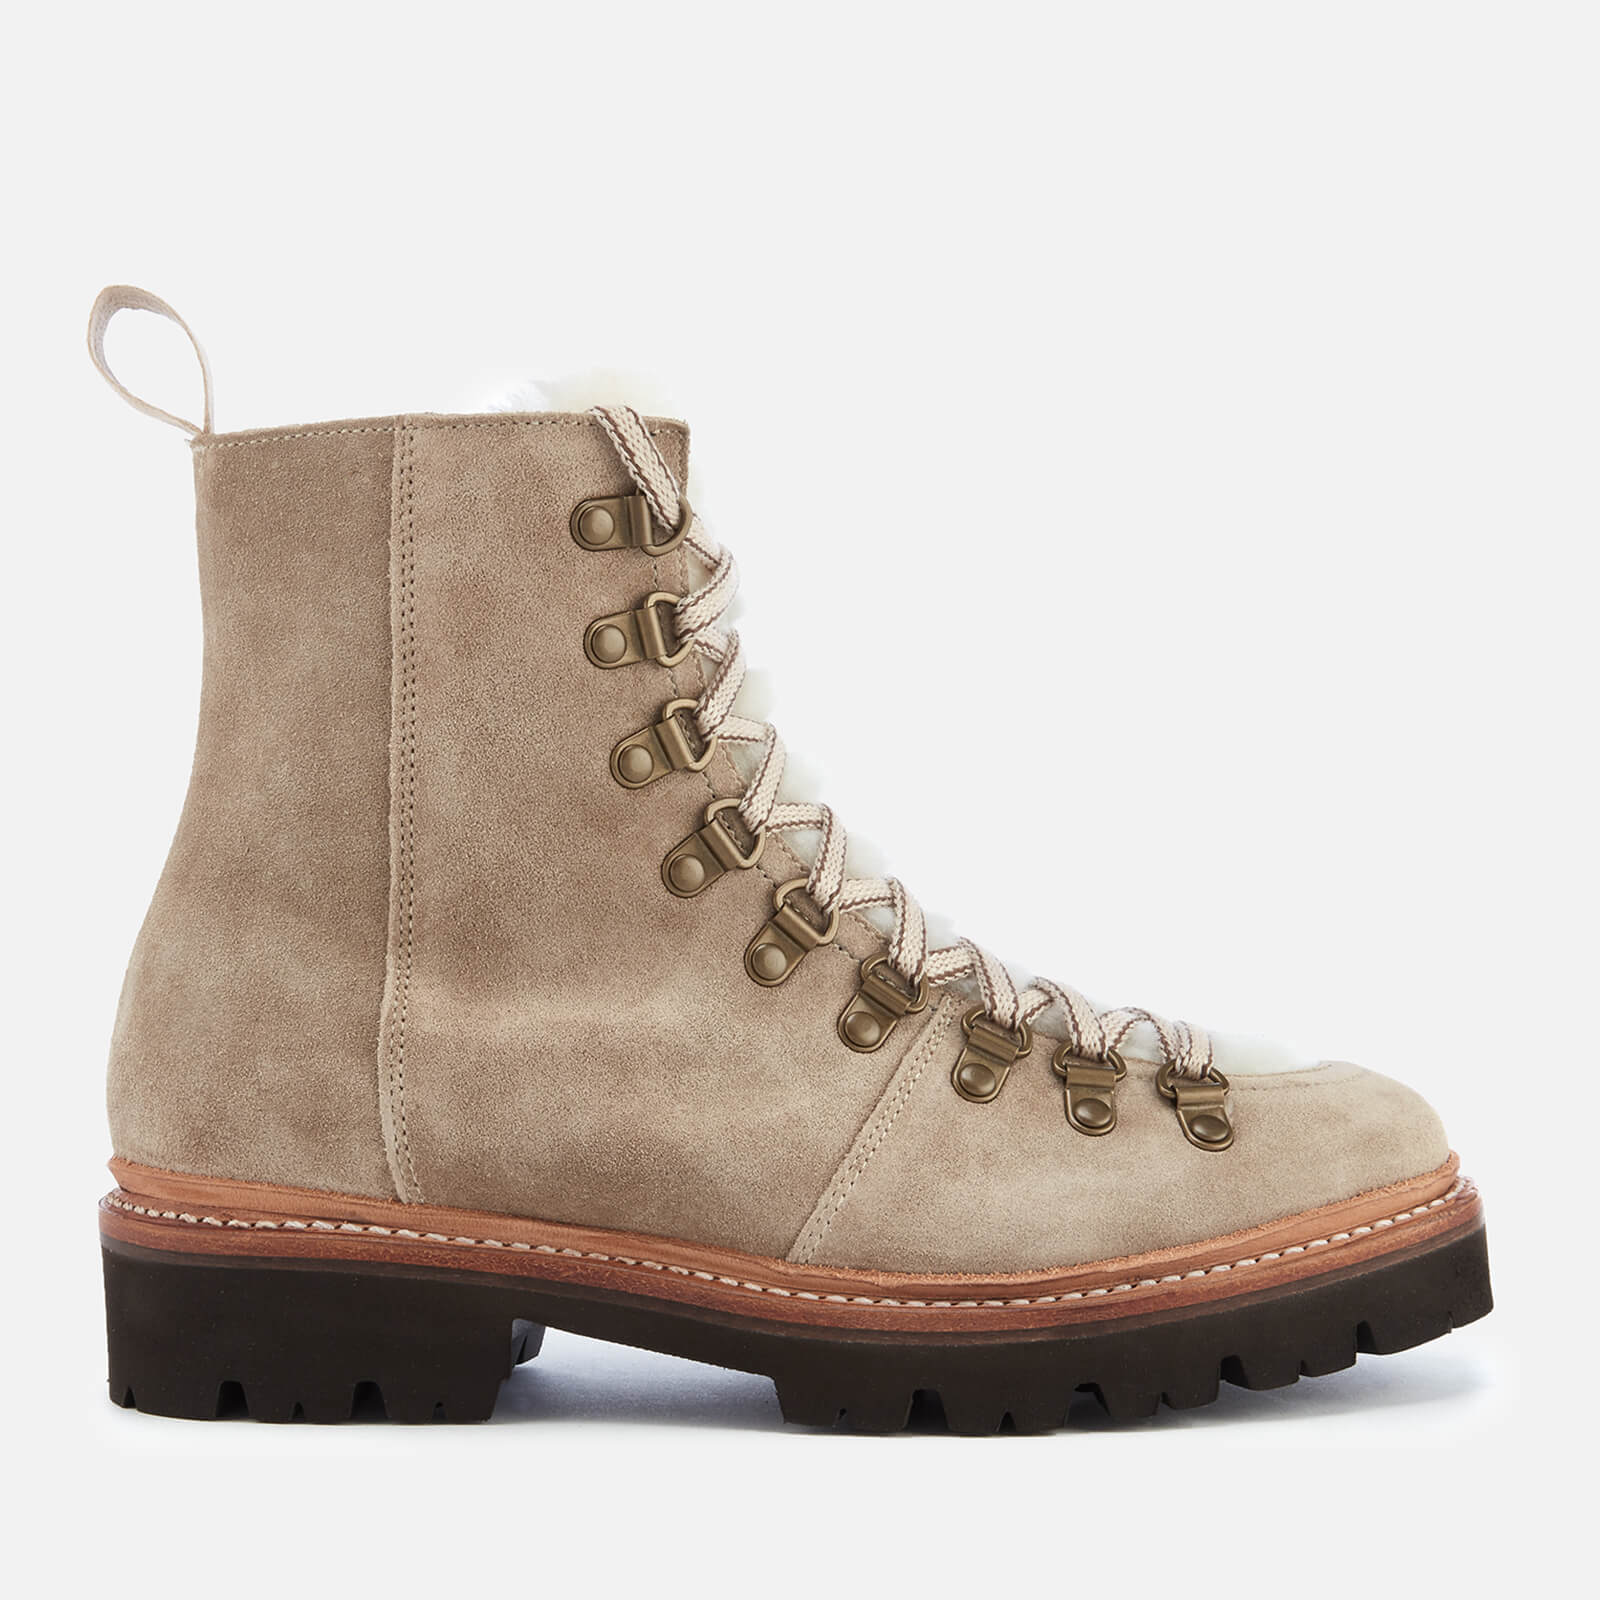 Grenson Women's Nanette Suede Hiking Style Boots - Maple - Uk 3